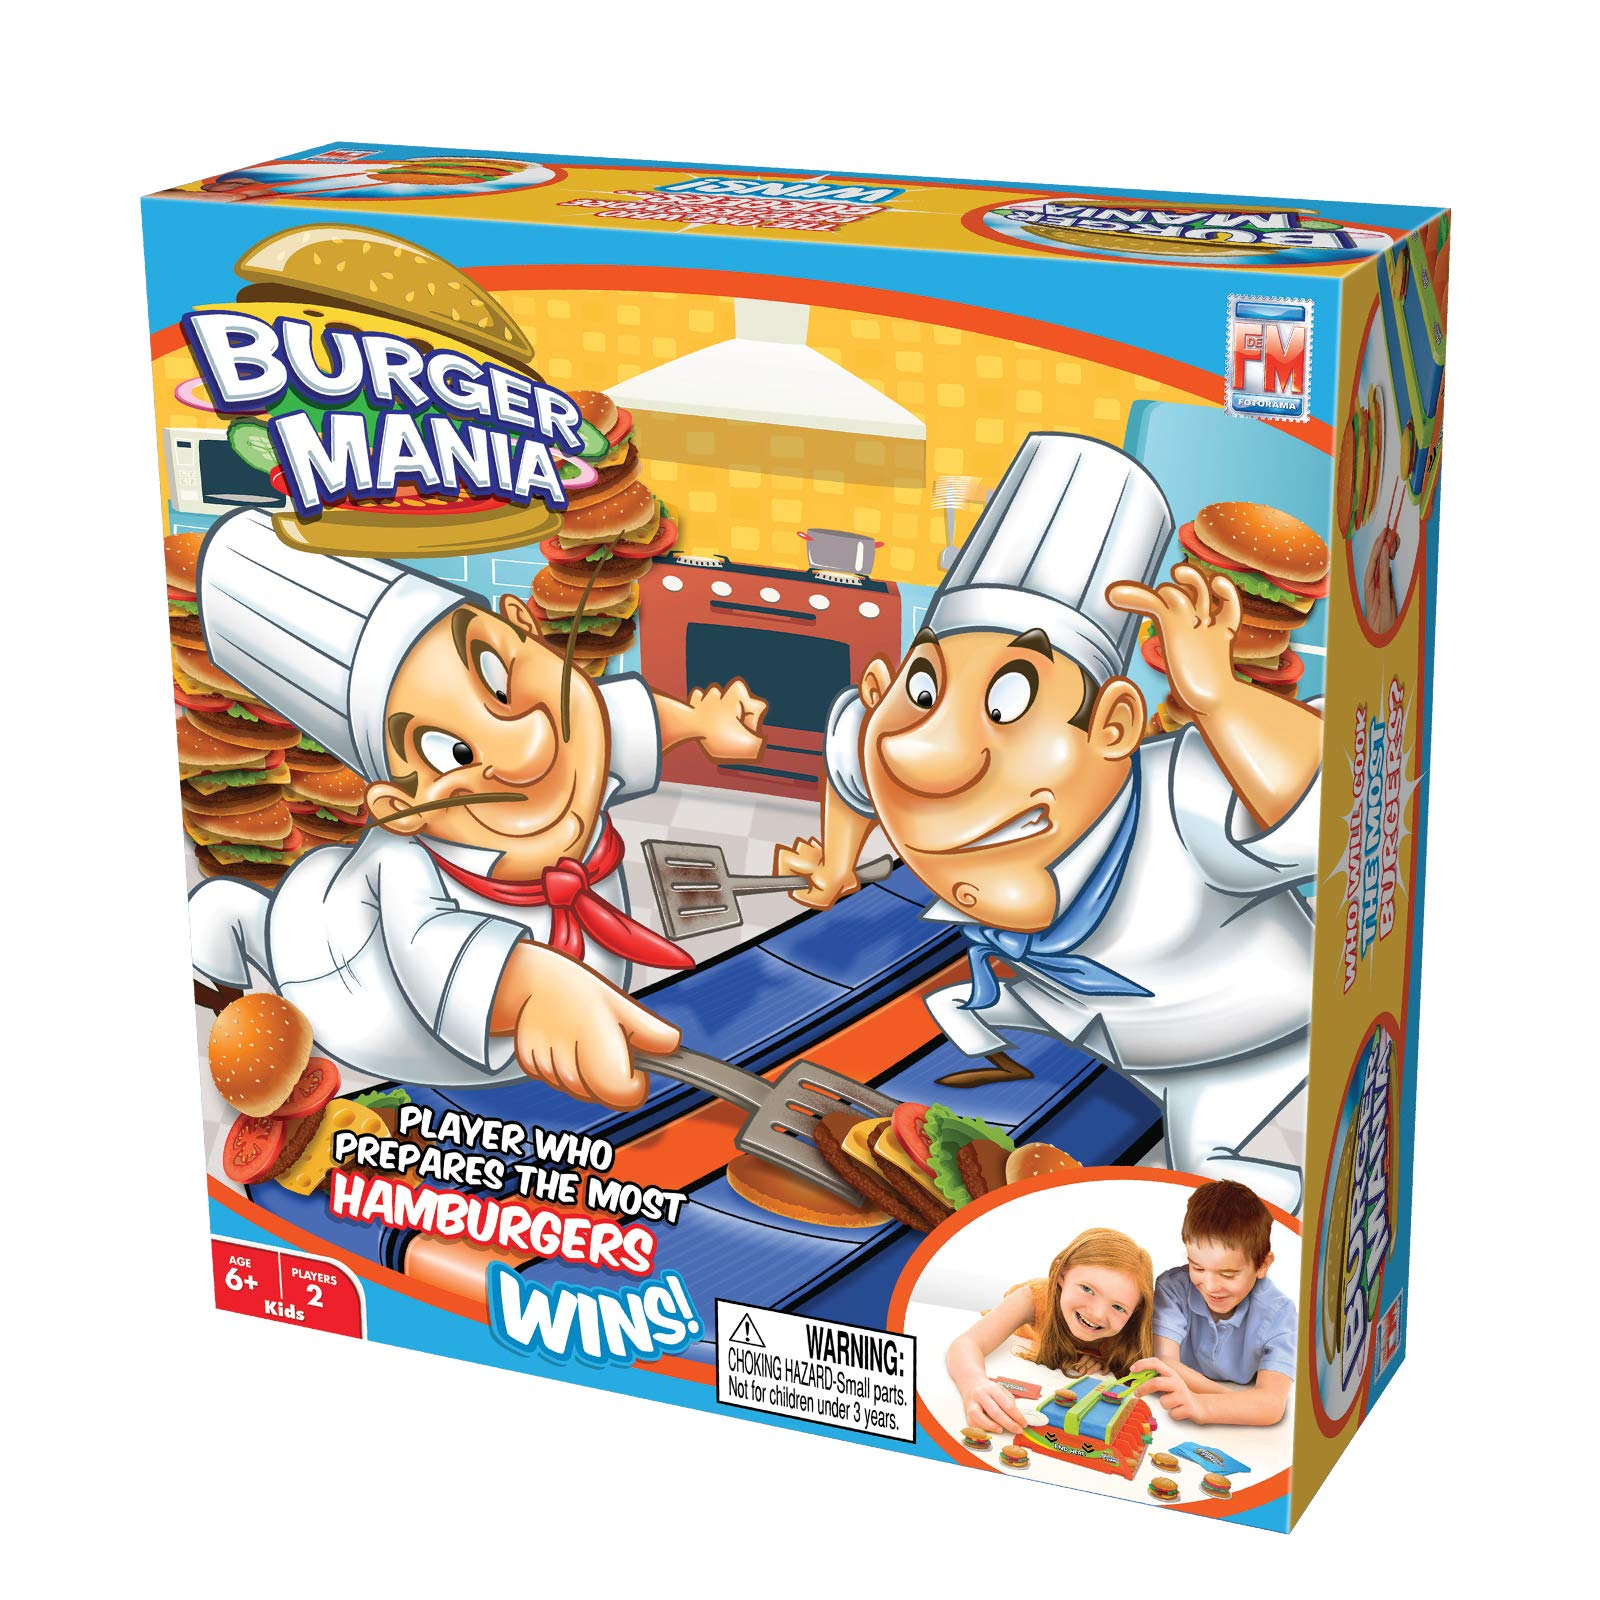 Fotorama Burger Mania Game Fast Pace Build a Burger Conveyor Fast Food Time Game Thrill Competition by Fotorama